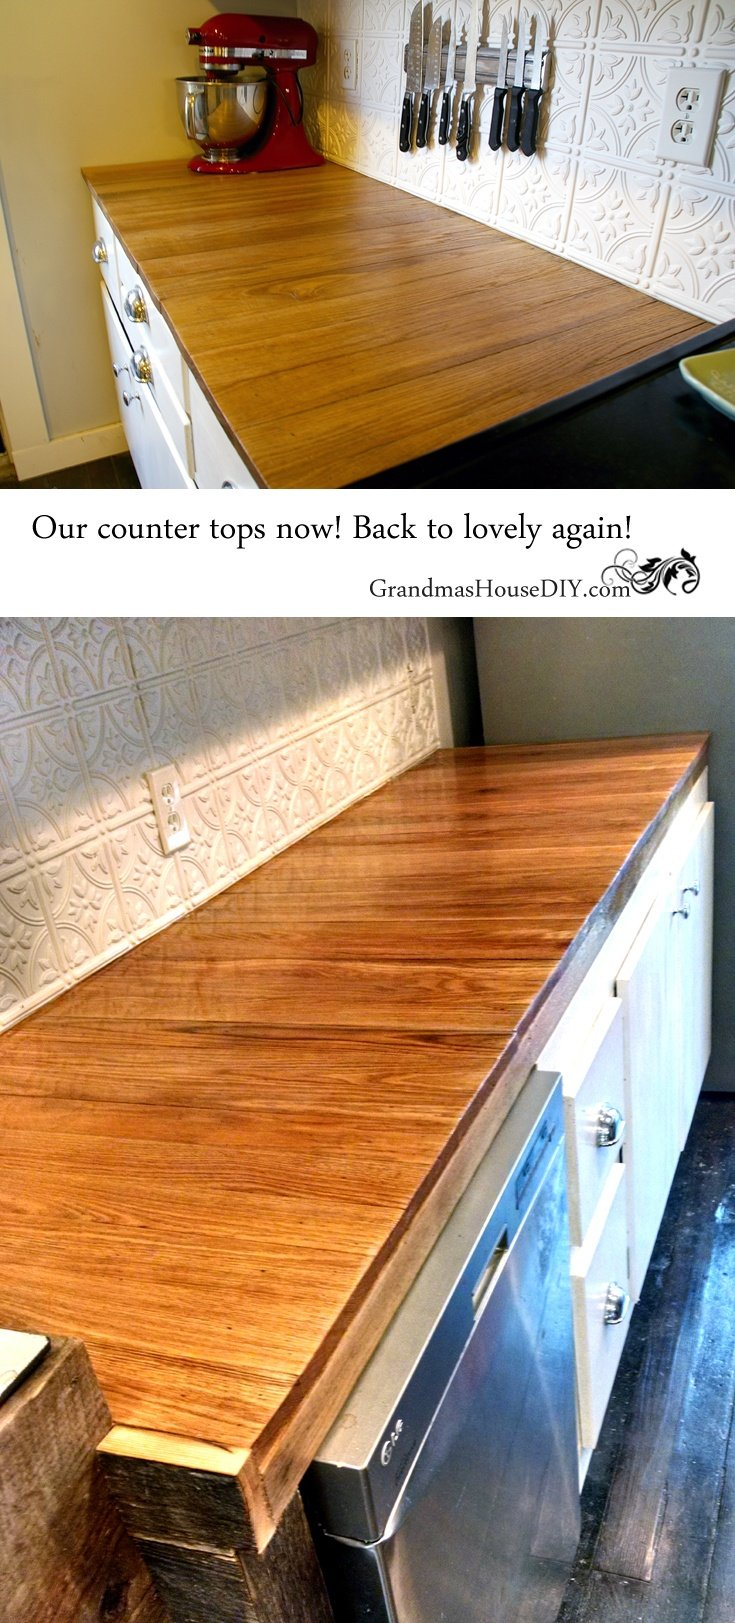 The horror story about our oak kitchen counter tops, how they warped and split and how I fixed them! @GrandmasHousDIY